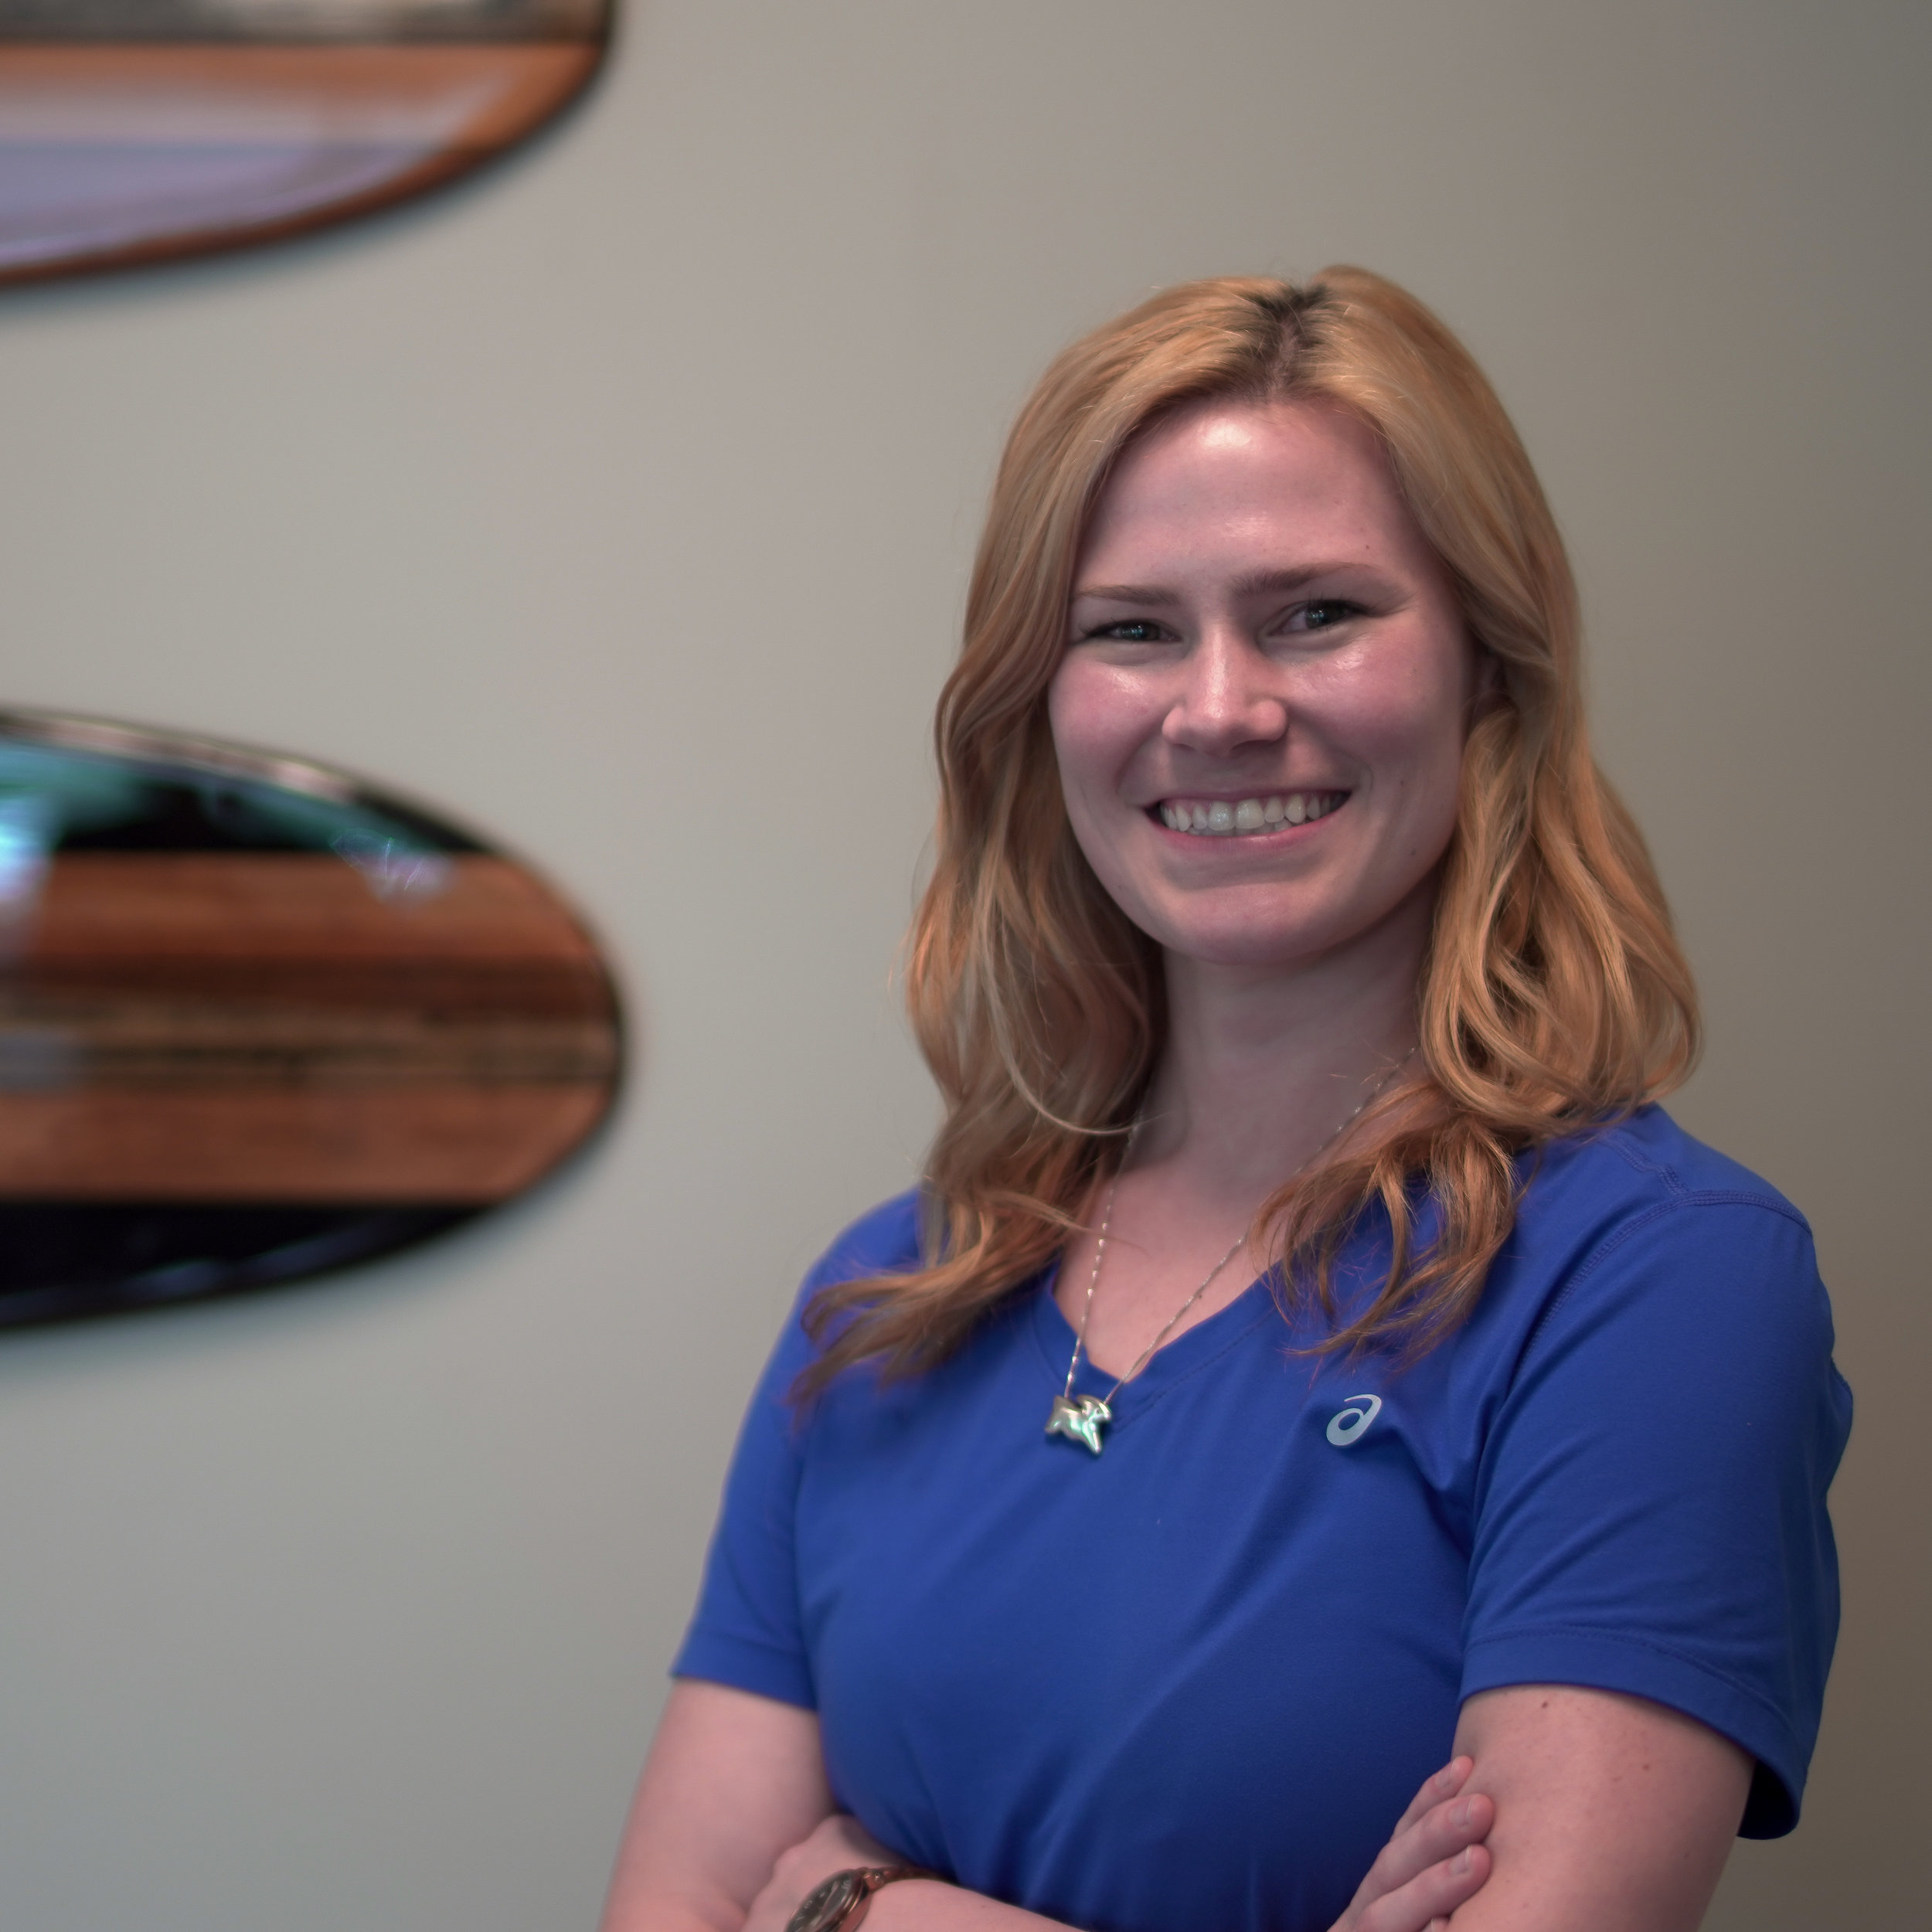 Earned her Doctor of Physical Therapy degree in December of 2018 through the University of St. Augustine for Health Sciences in Austin, TX.